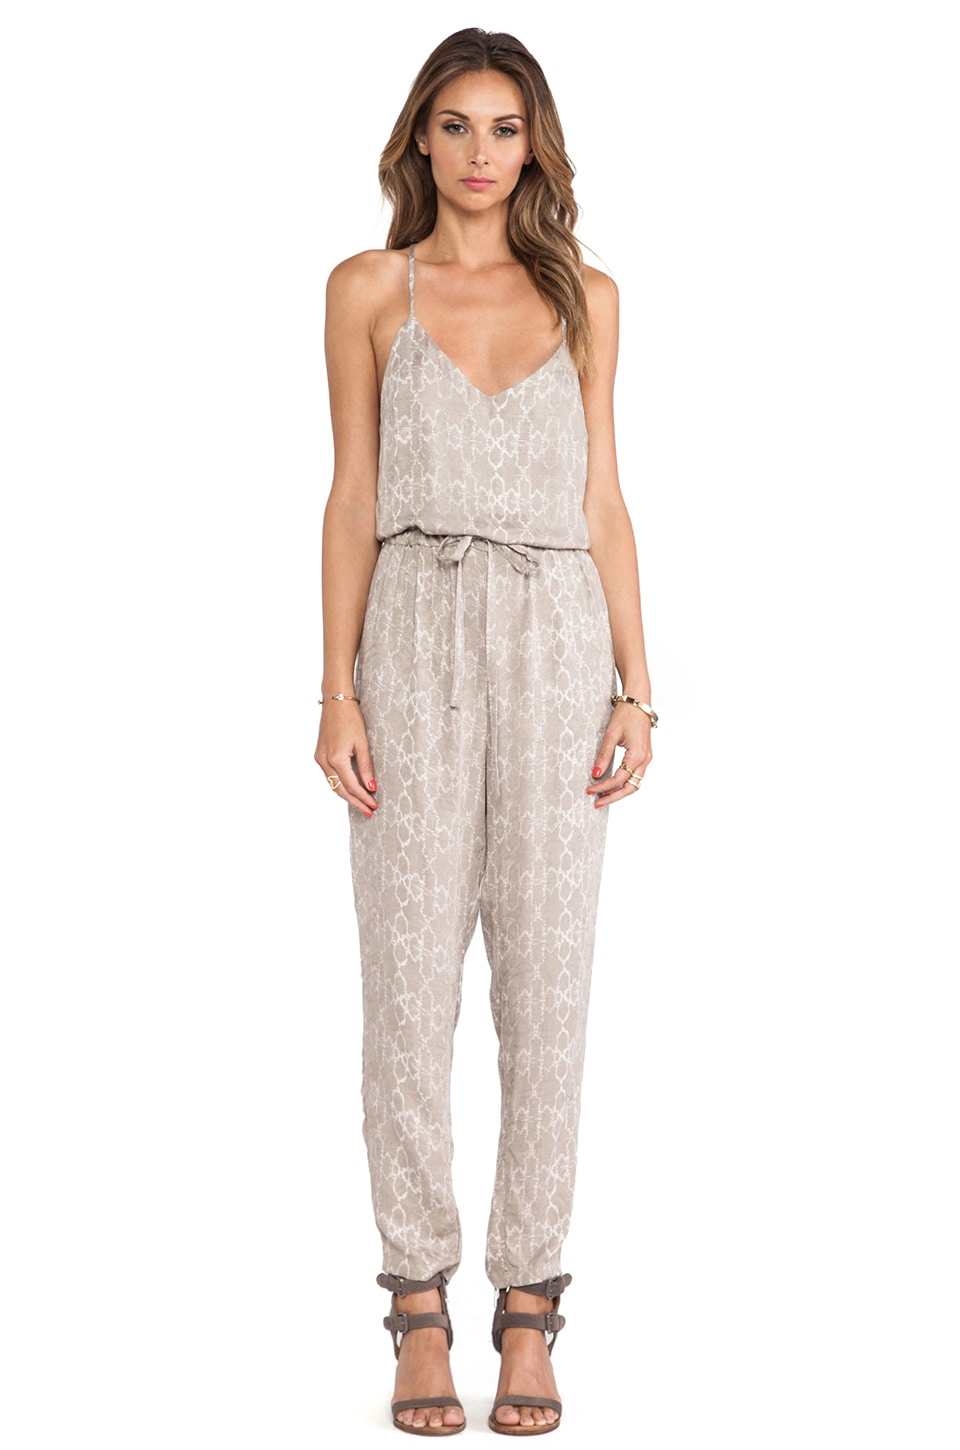 Free People Sunset Romper in Stone Combo